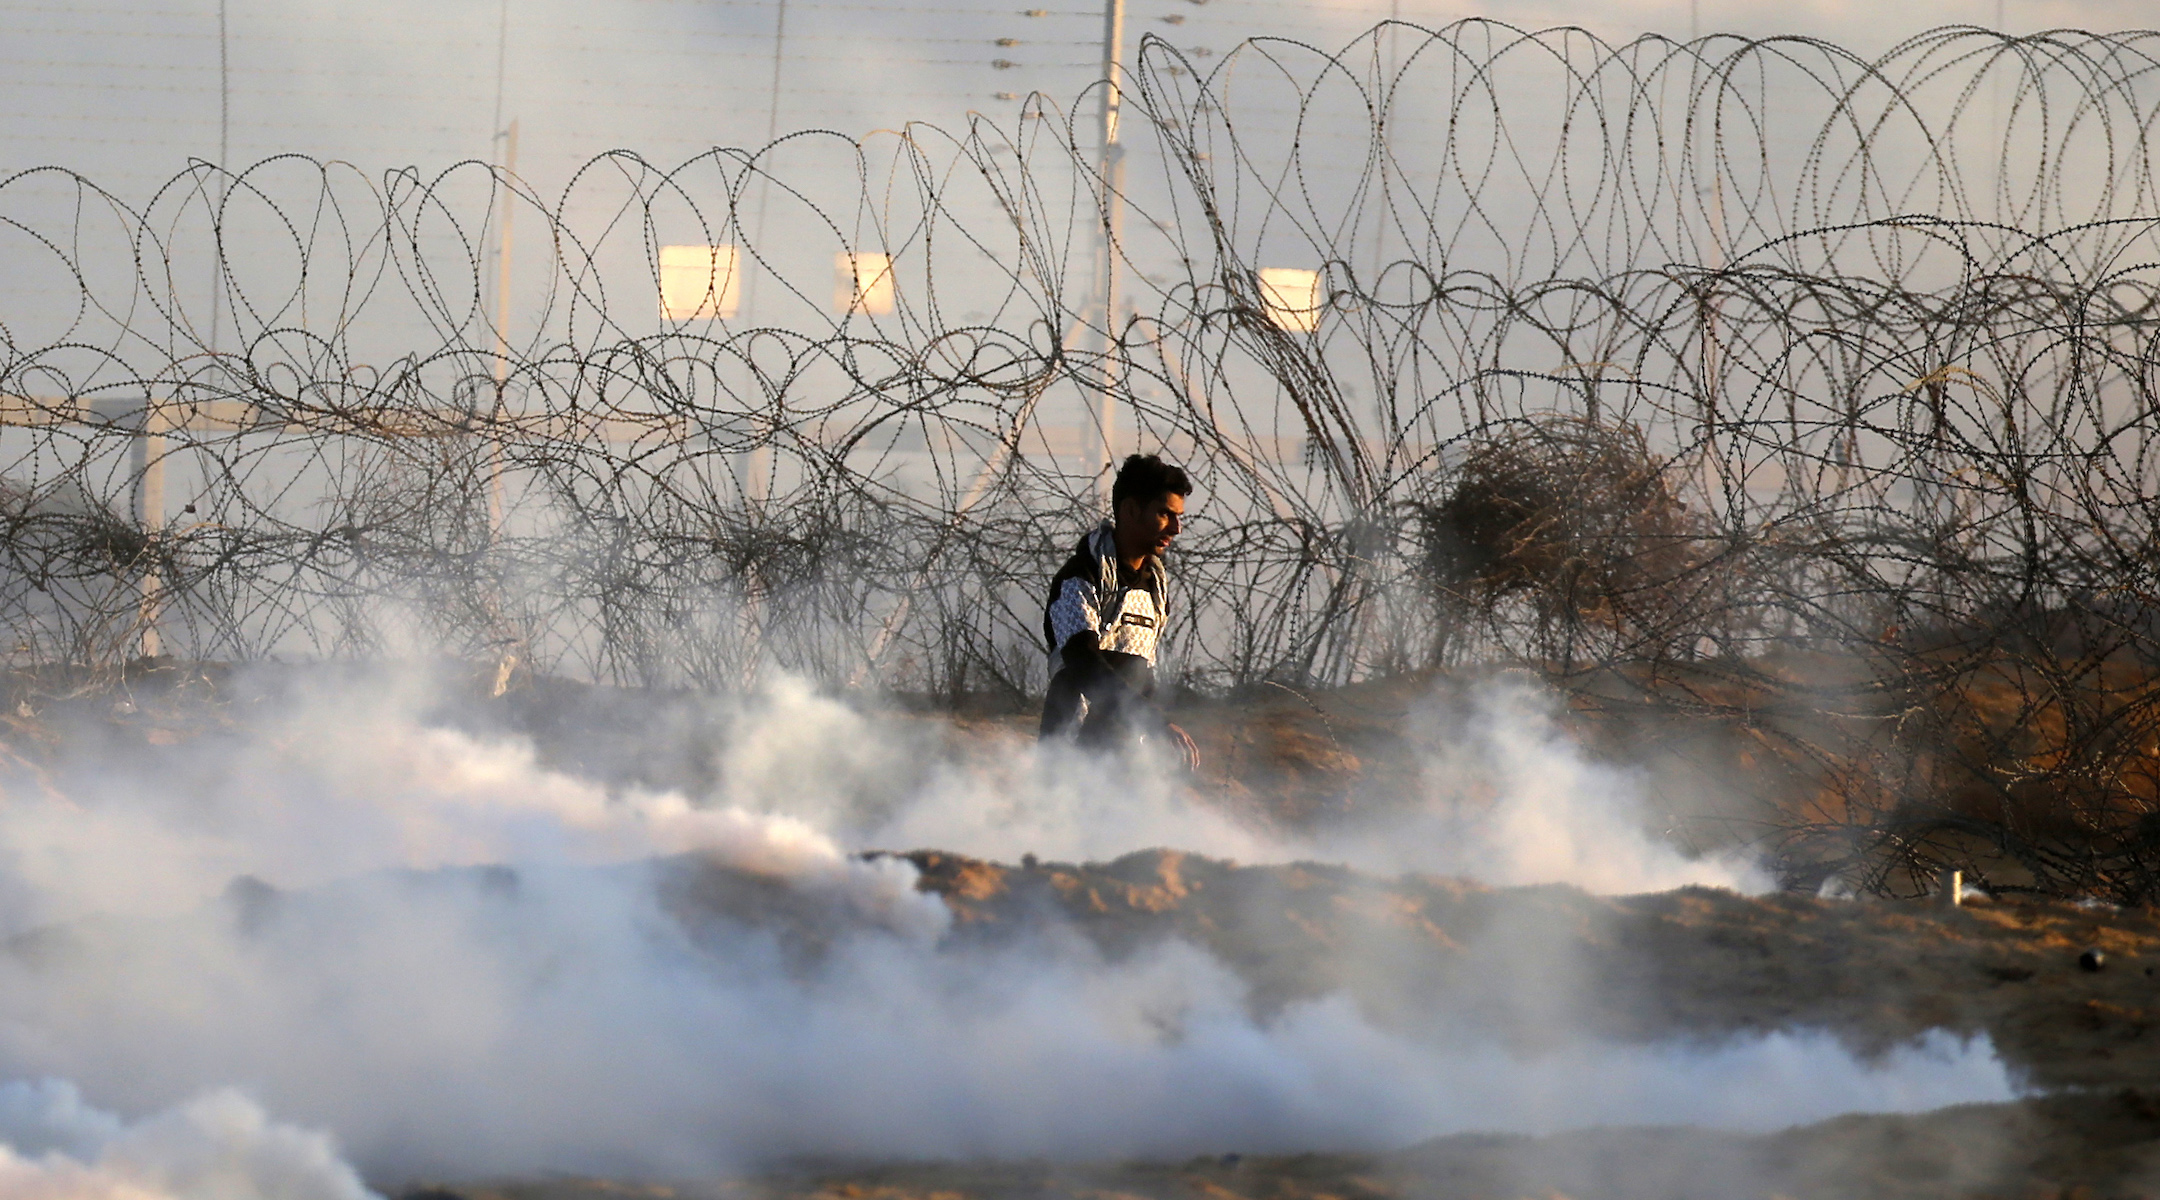 A Palestinian demonstrator walks amidst tear gas smoke fired by Israeli forces during a protest near the Israel-Gaza border fence in the southern Gaza Strip, on December 27, 2019. (Said Khatib/AFP via Getty Images)